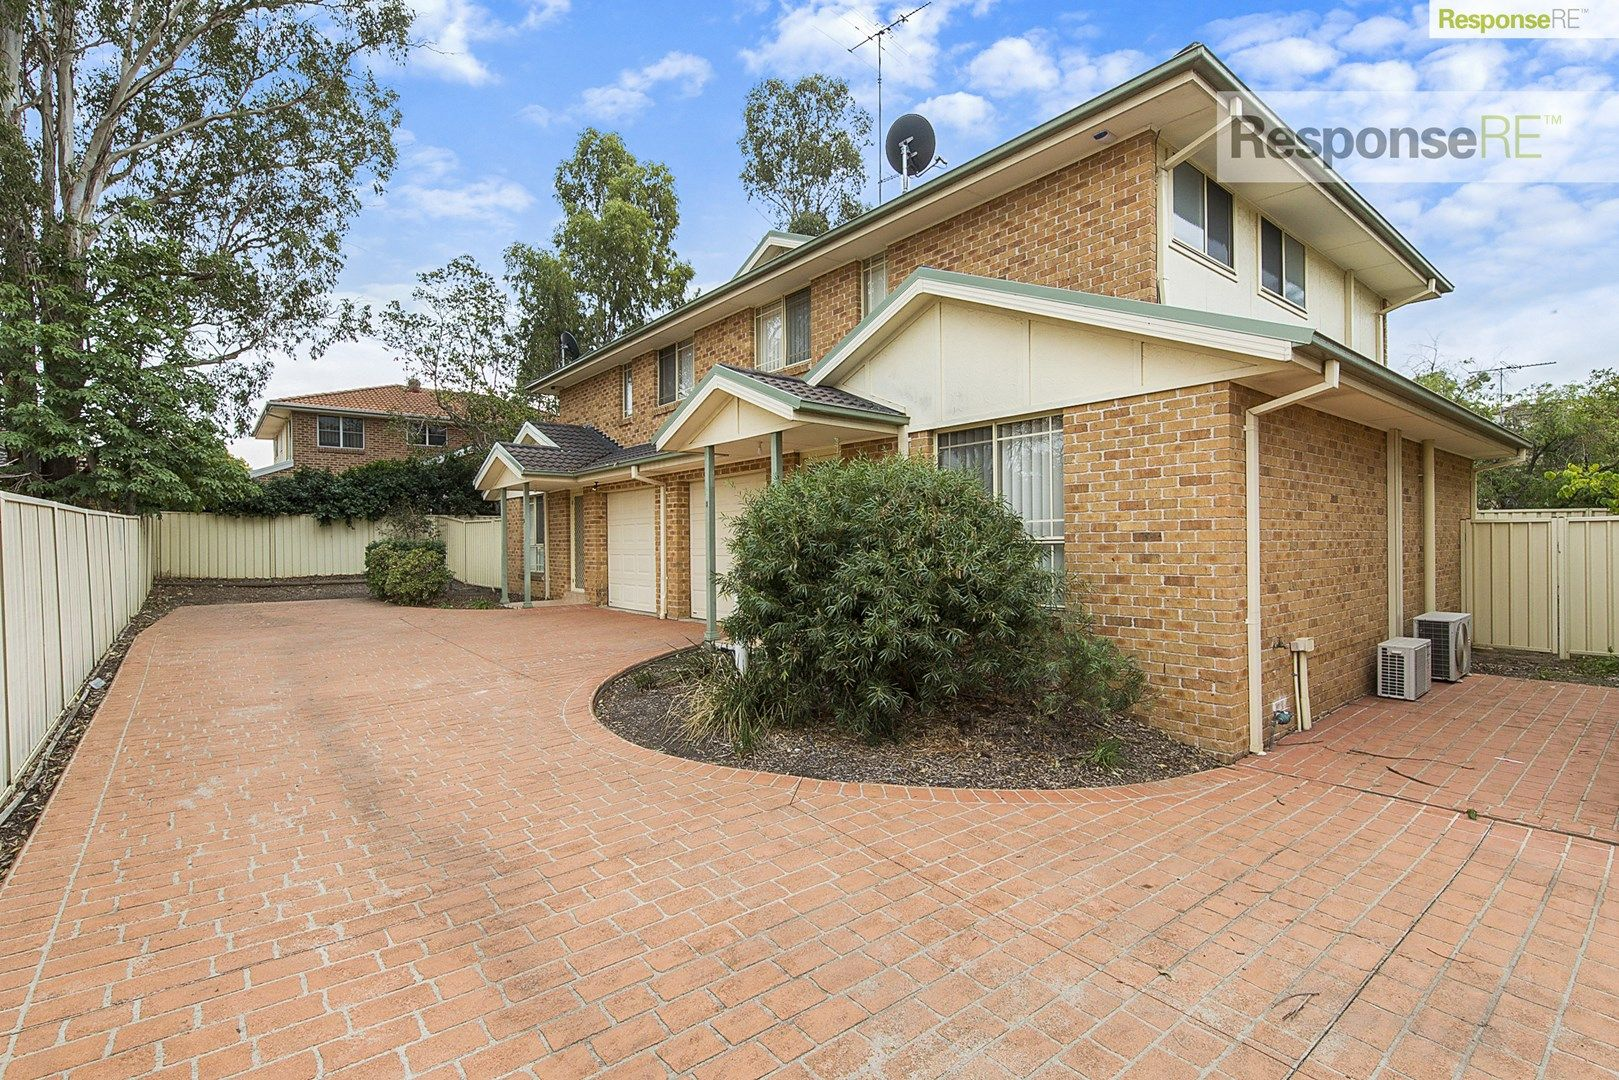 3/43 First Street, Kingswood NSW 2747, Image 0